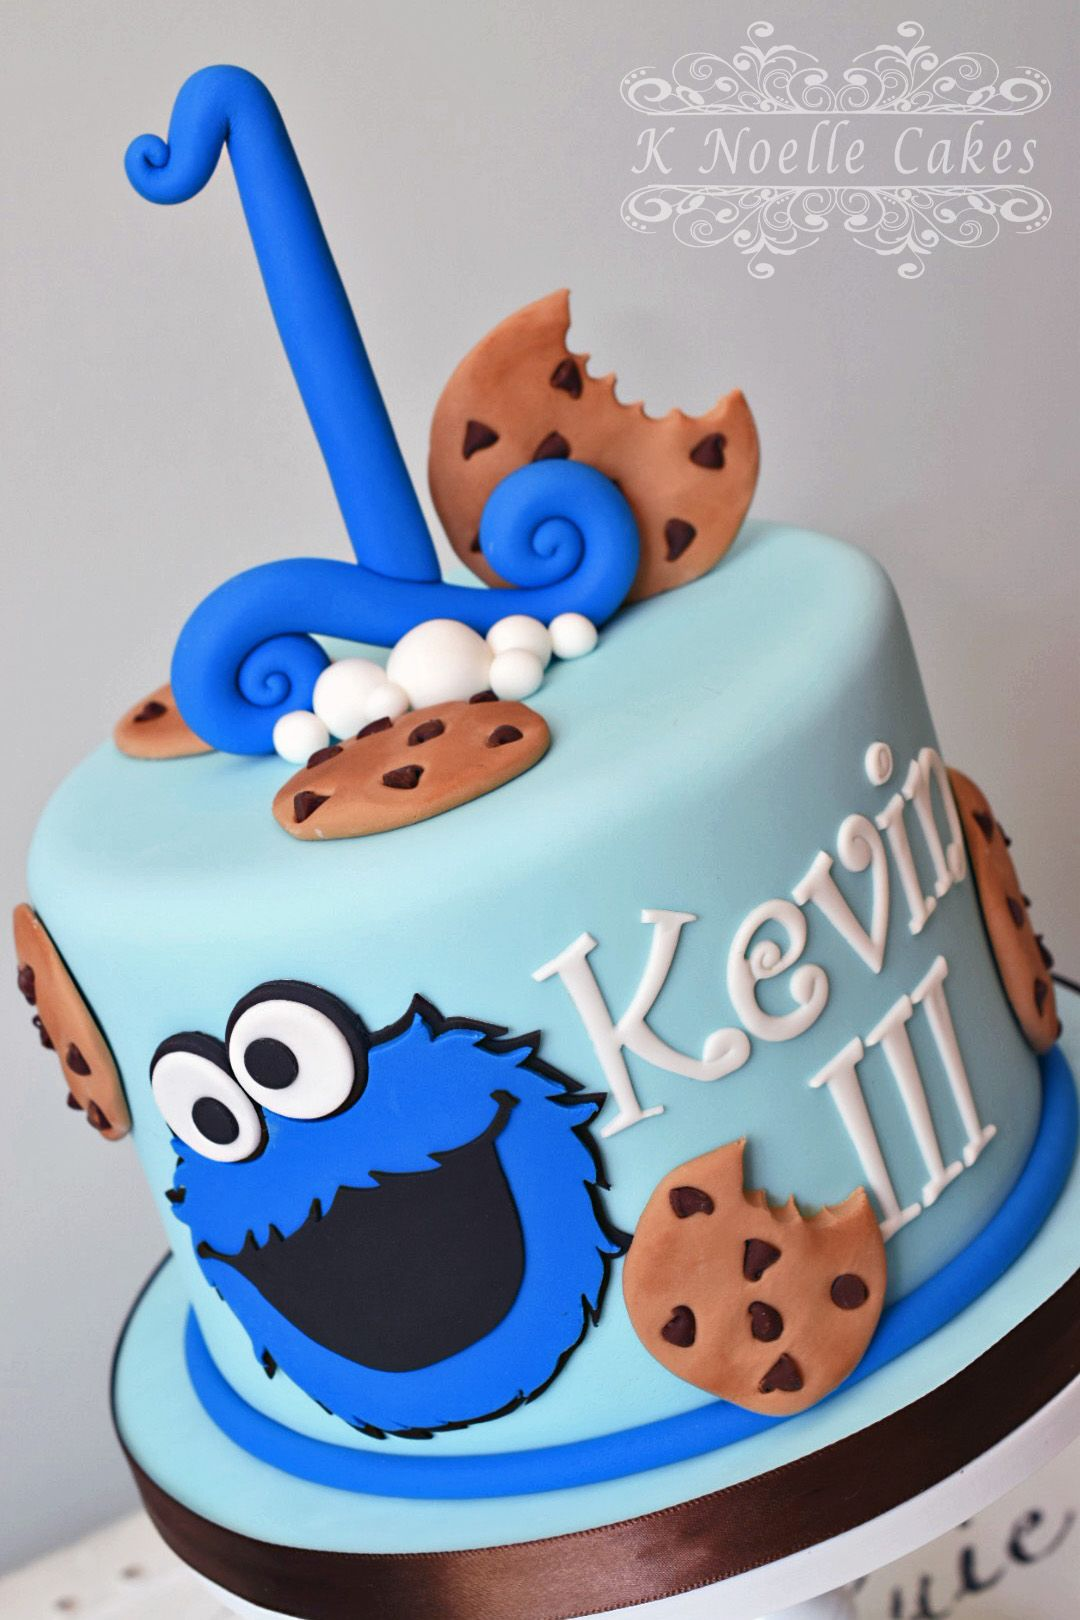 Cookie Monster theme 1st Birthday cake by K Noelle Cakes